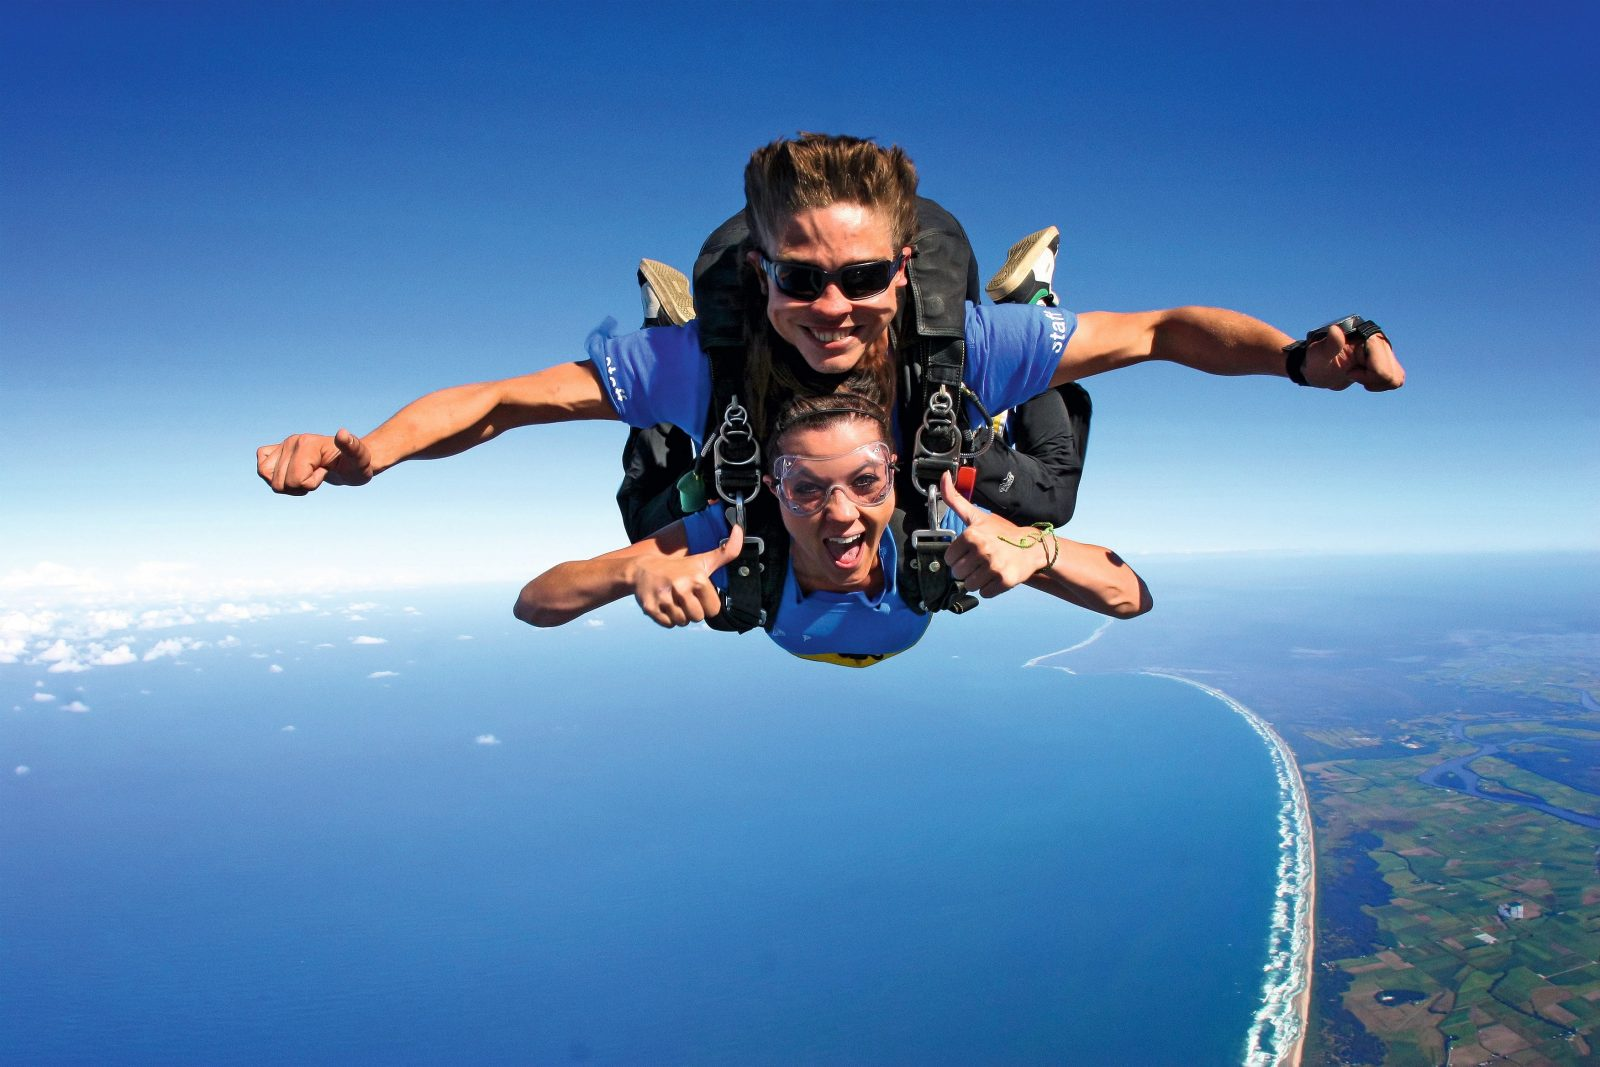 Skydive over the Great Barrier Reef with Skydive Airlie Beach